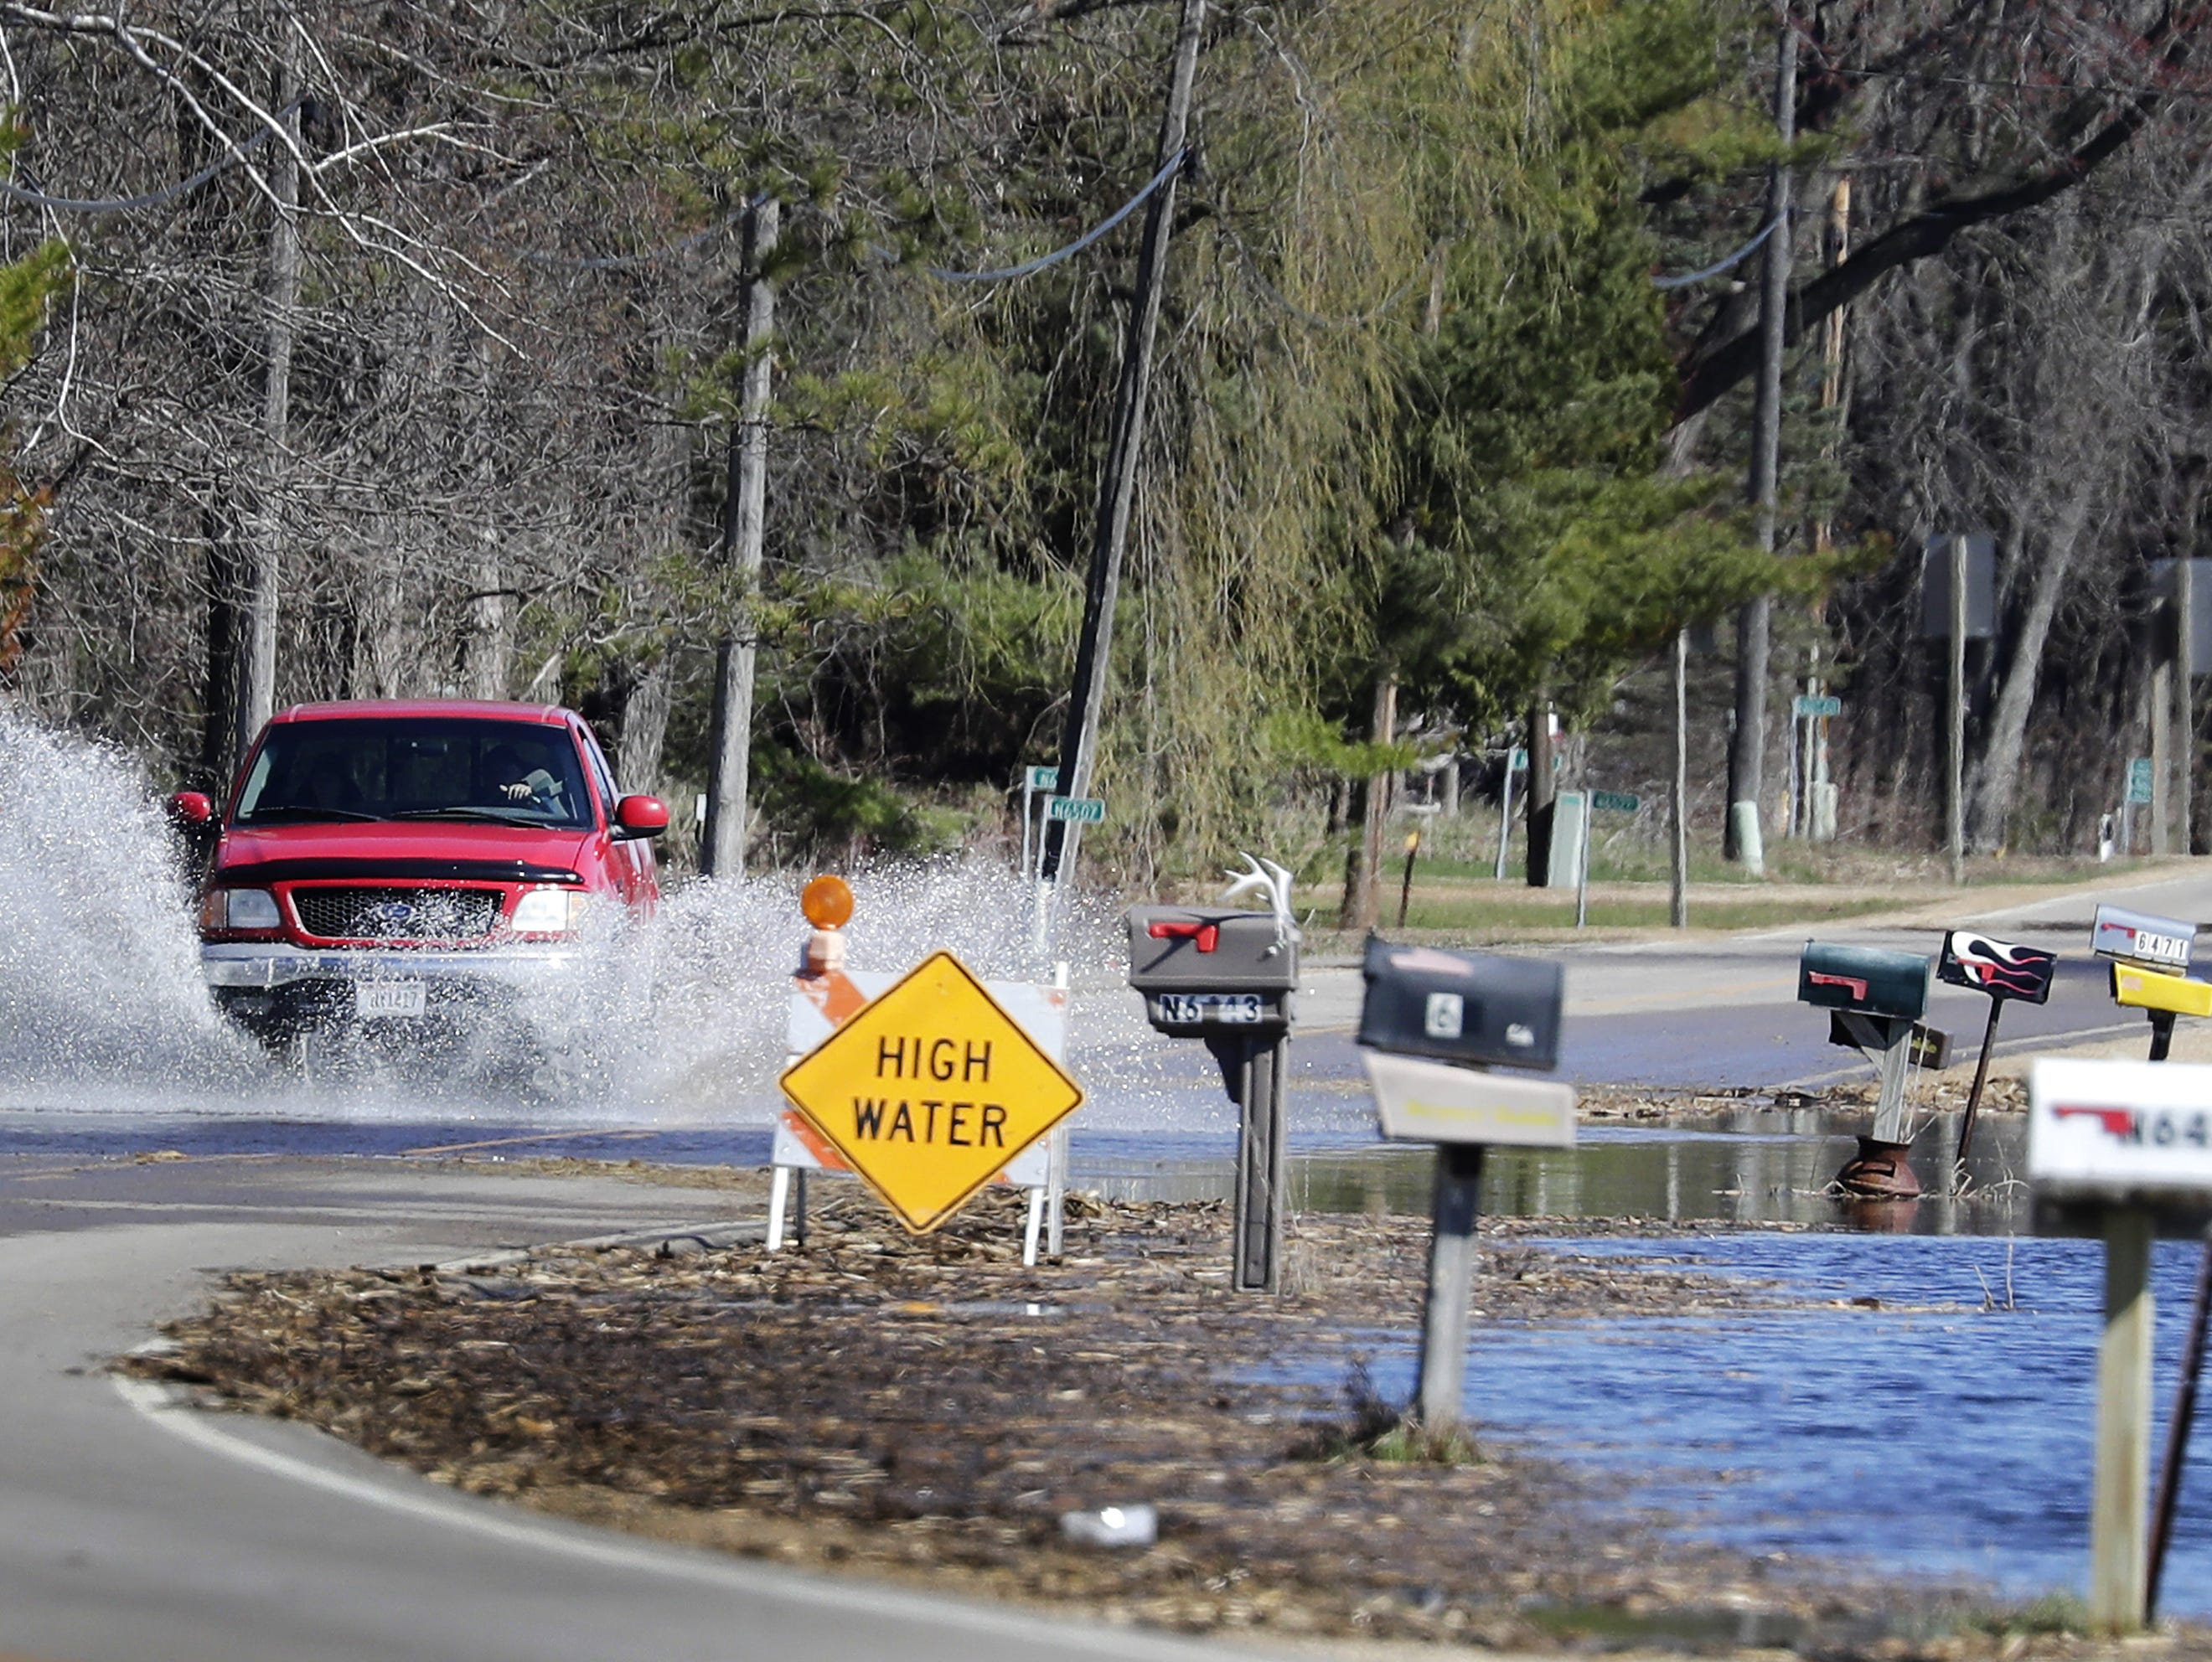 High water covers Hwy 187 during flooding along the Wolf River on Tuesday, April 23, 2019, in Shiocton, Wis.  Wm. Glasheen/USA TODAY NETWORK-Wisconsin.